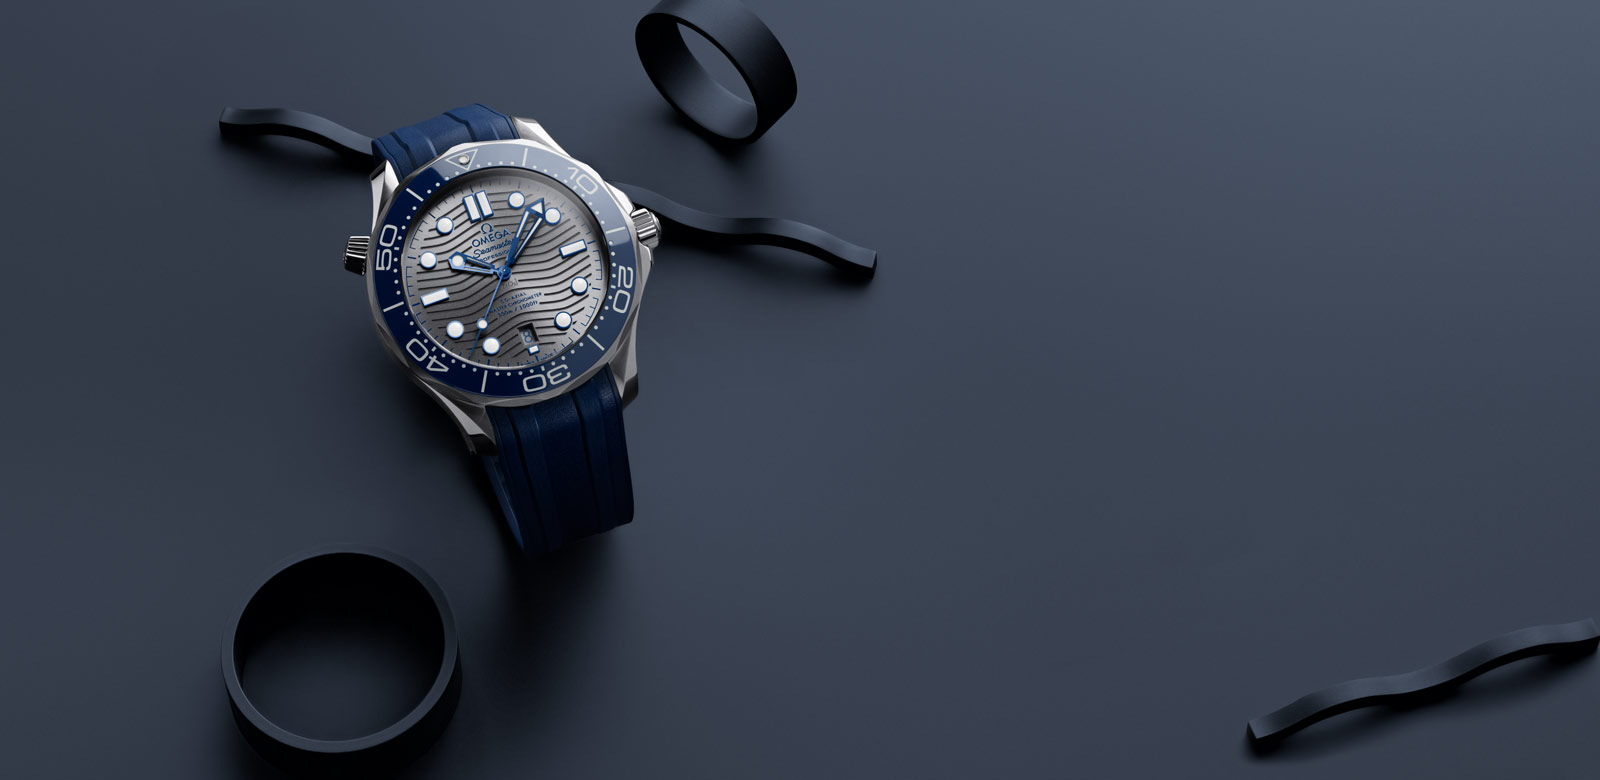 Omega®: Swiss Luxury Watches Since 1848 Carousel 2 - 60203